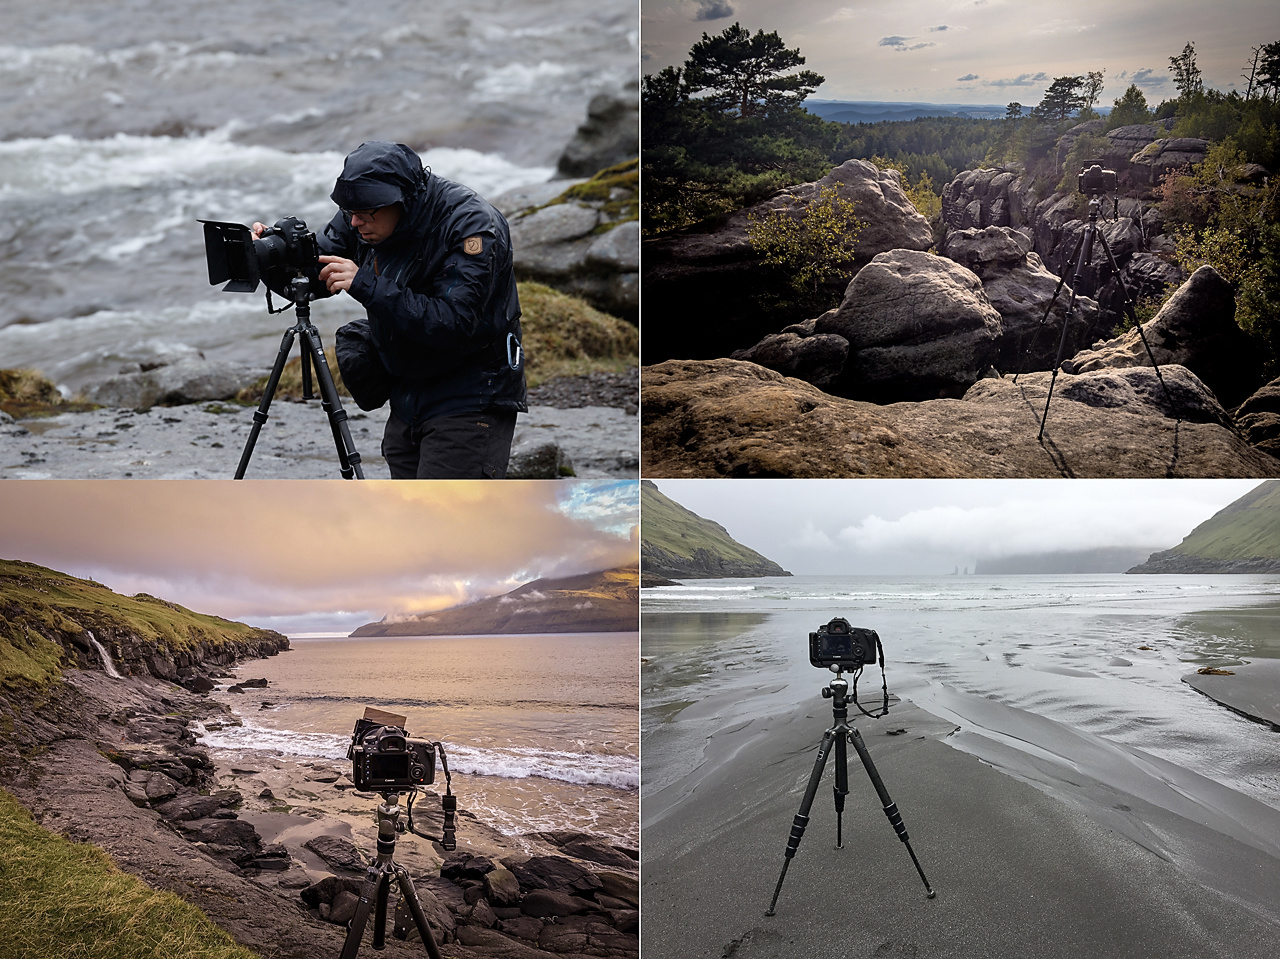 A couple of impressions, most of them from our trip to the Faroe Islands in 2018, and one from the last trip to Germany. The tripod is very versatile because it can be uses for my lightweight camera, and my dslr as well.